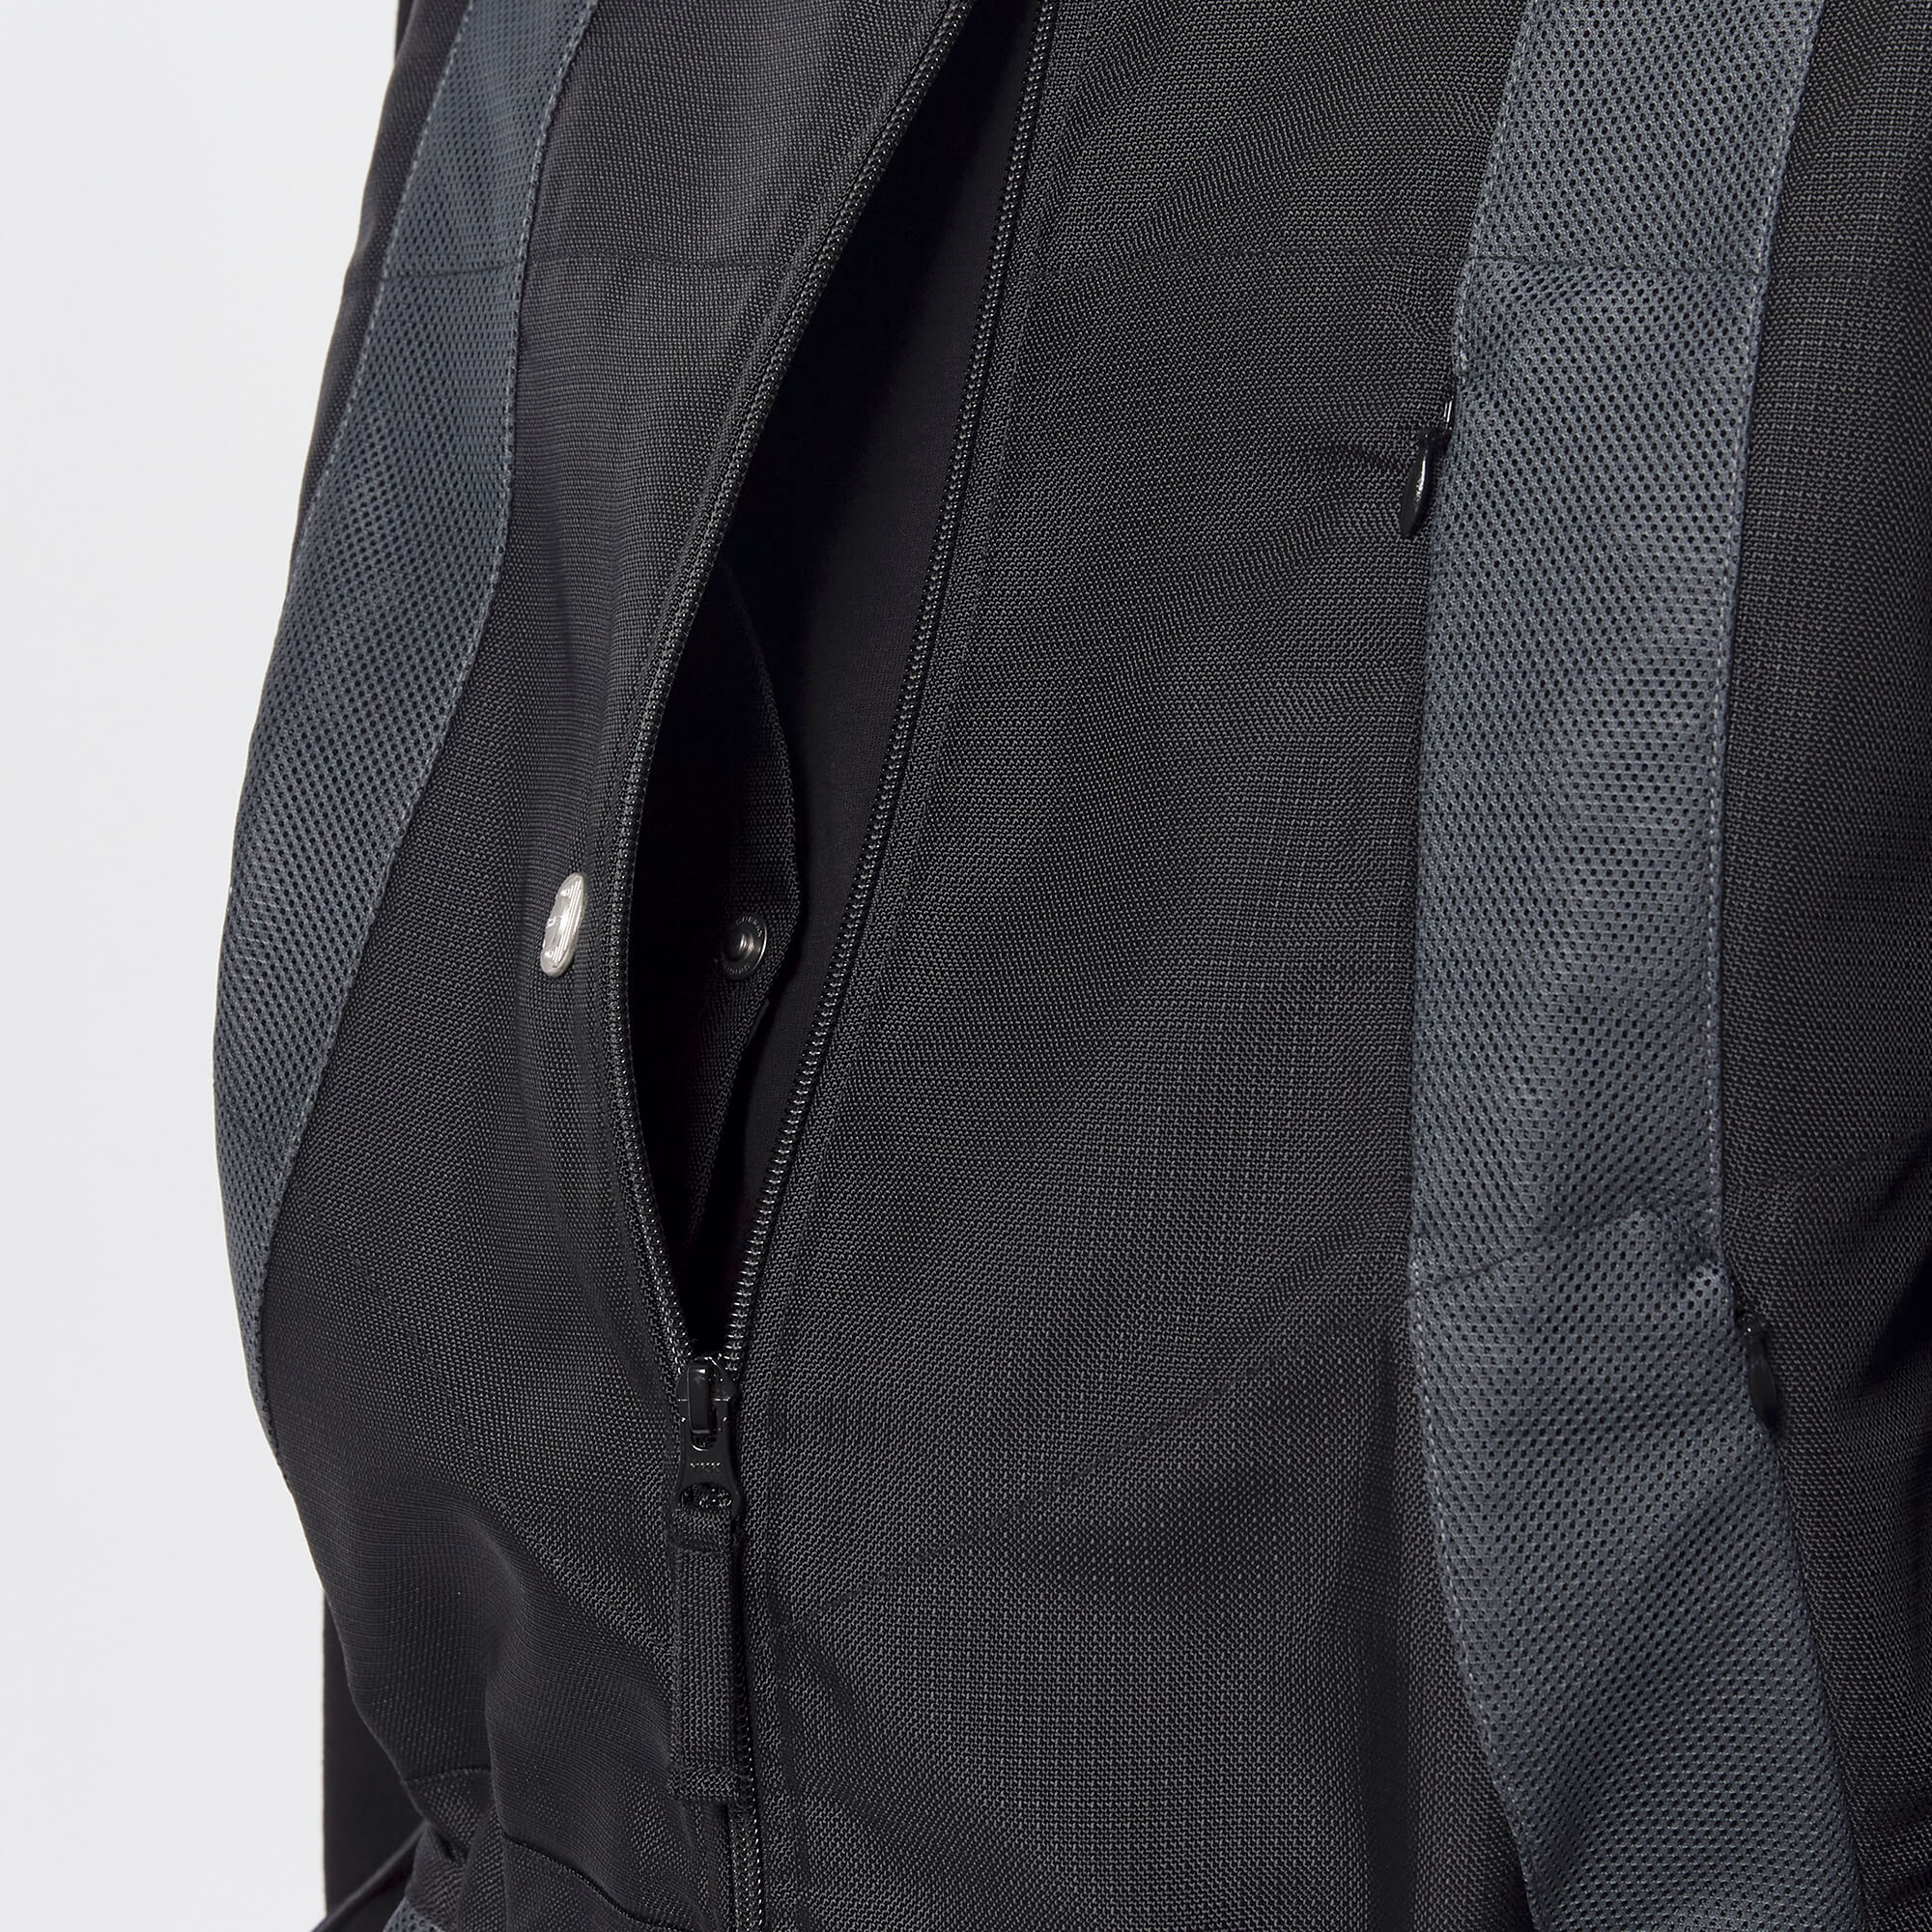 AFFIX WORKS AFFXWRKS CORDURA MESH VEST BLACK EXCLUSIVE